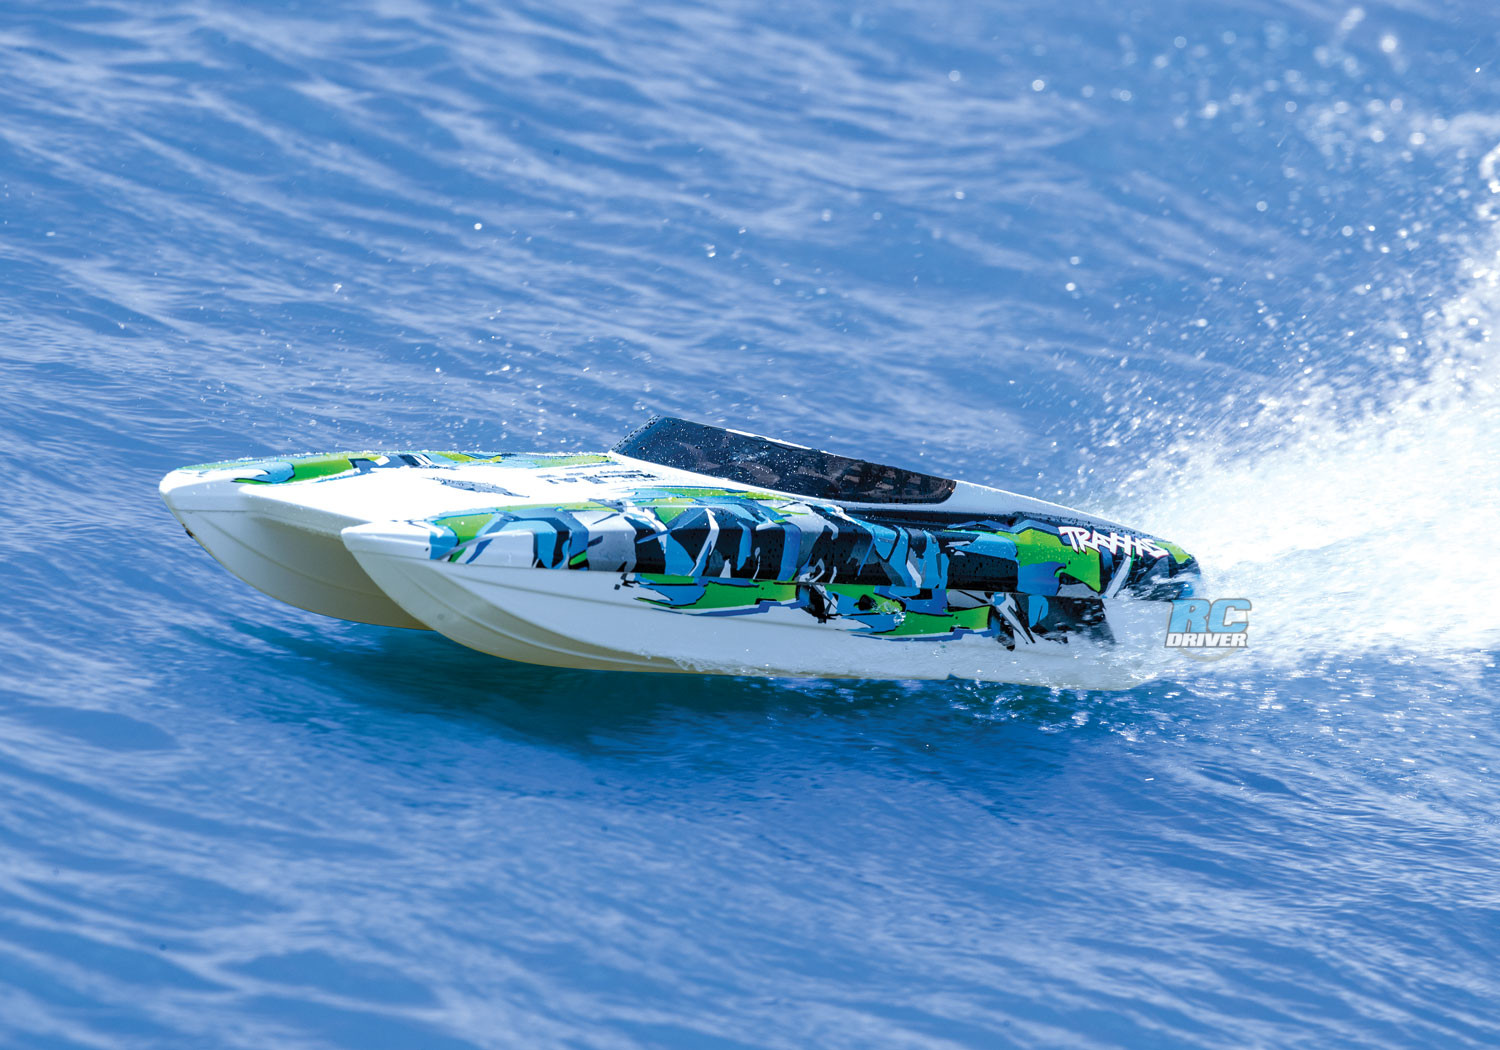 Traxxas DCB M41 Widebody catamaran gets a new look